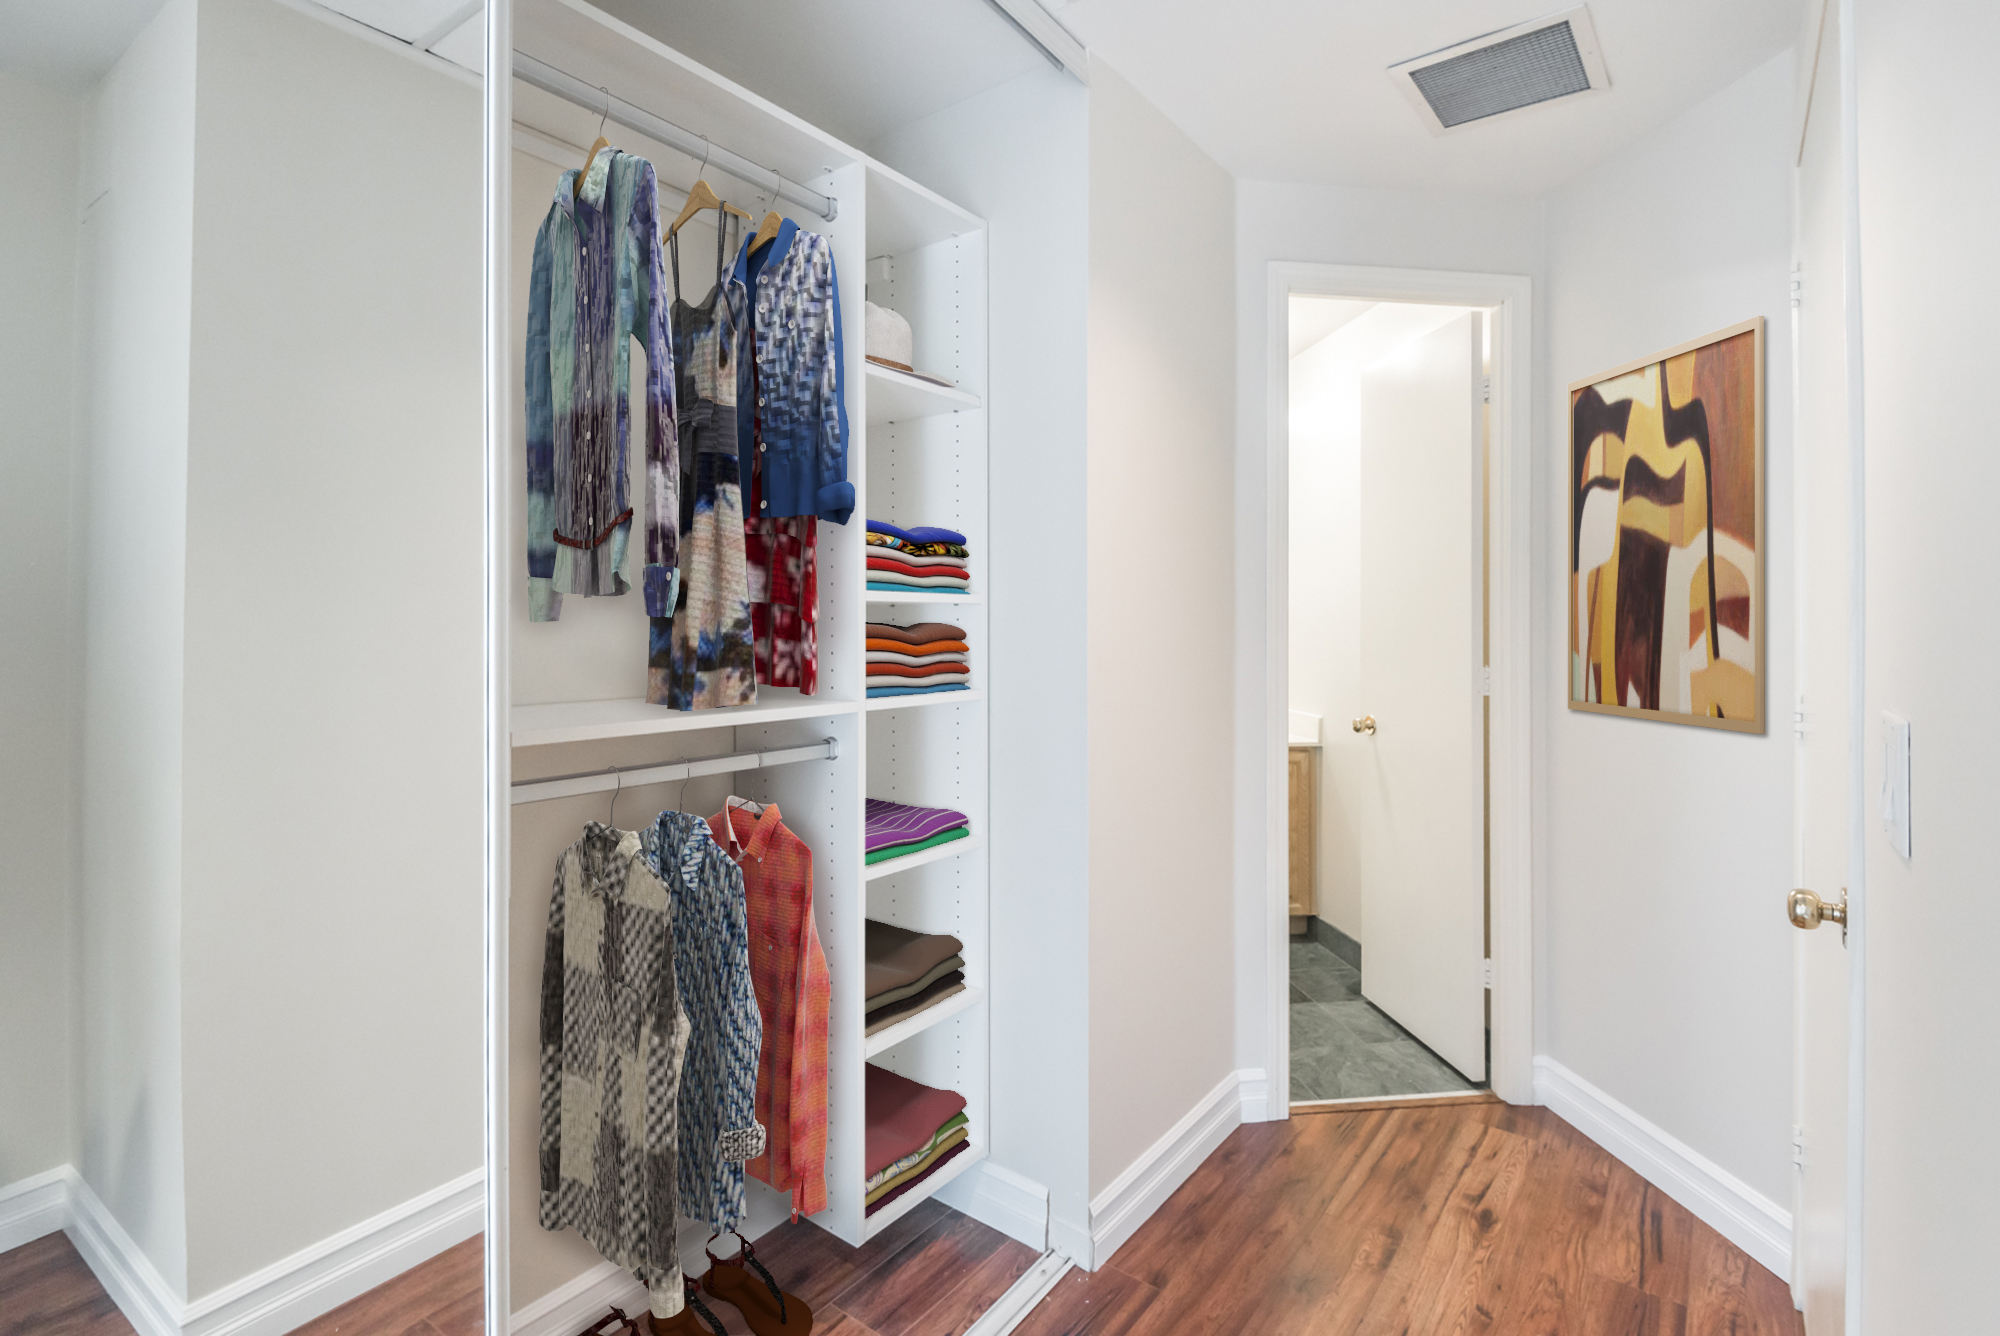 So here we have another virtually-staged photo. This one is of the closet and we can see so many clothes and other items.